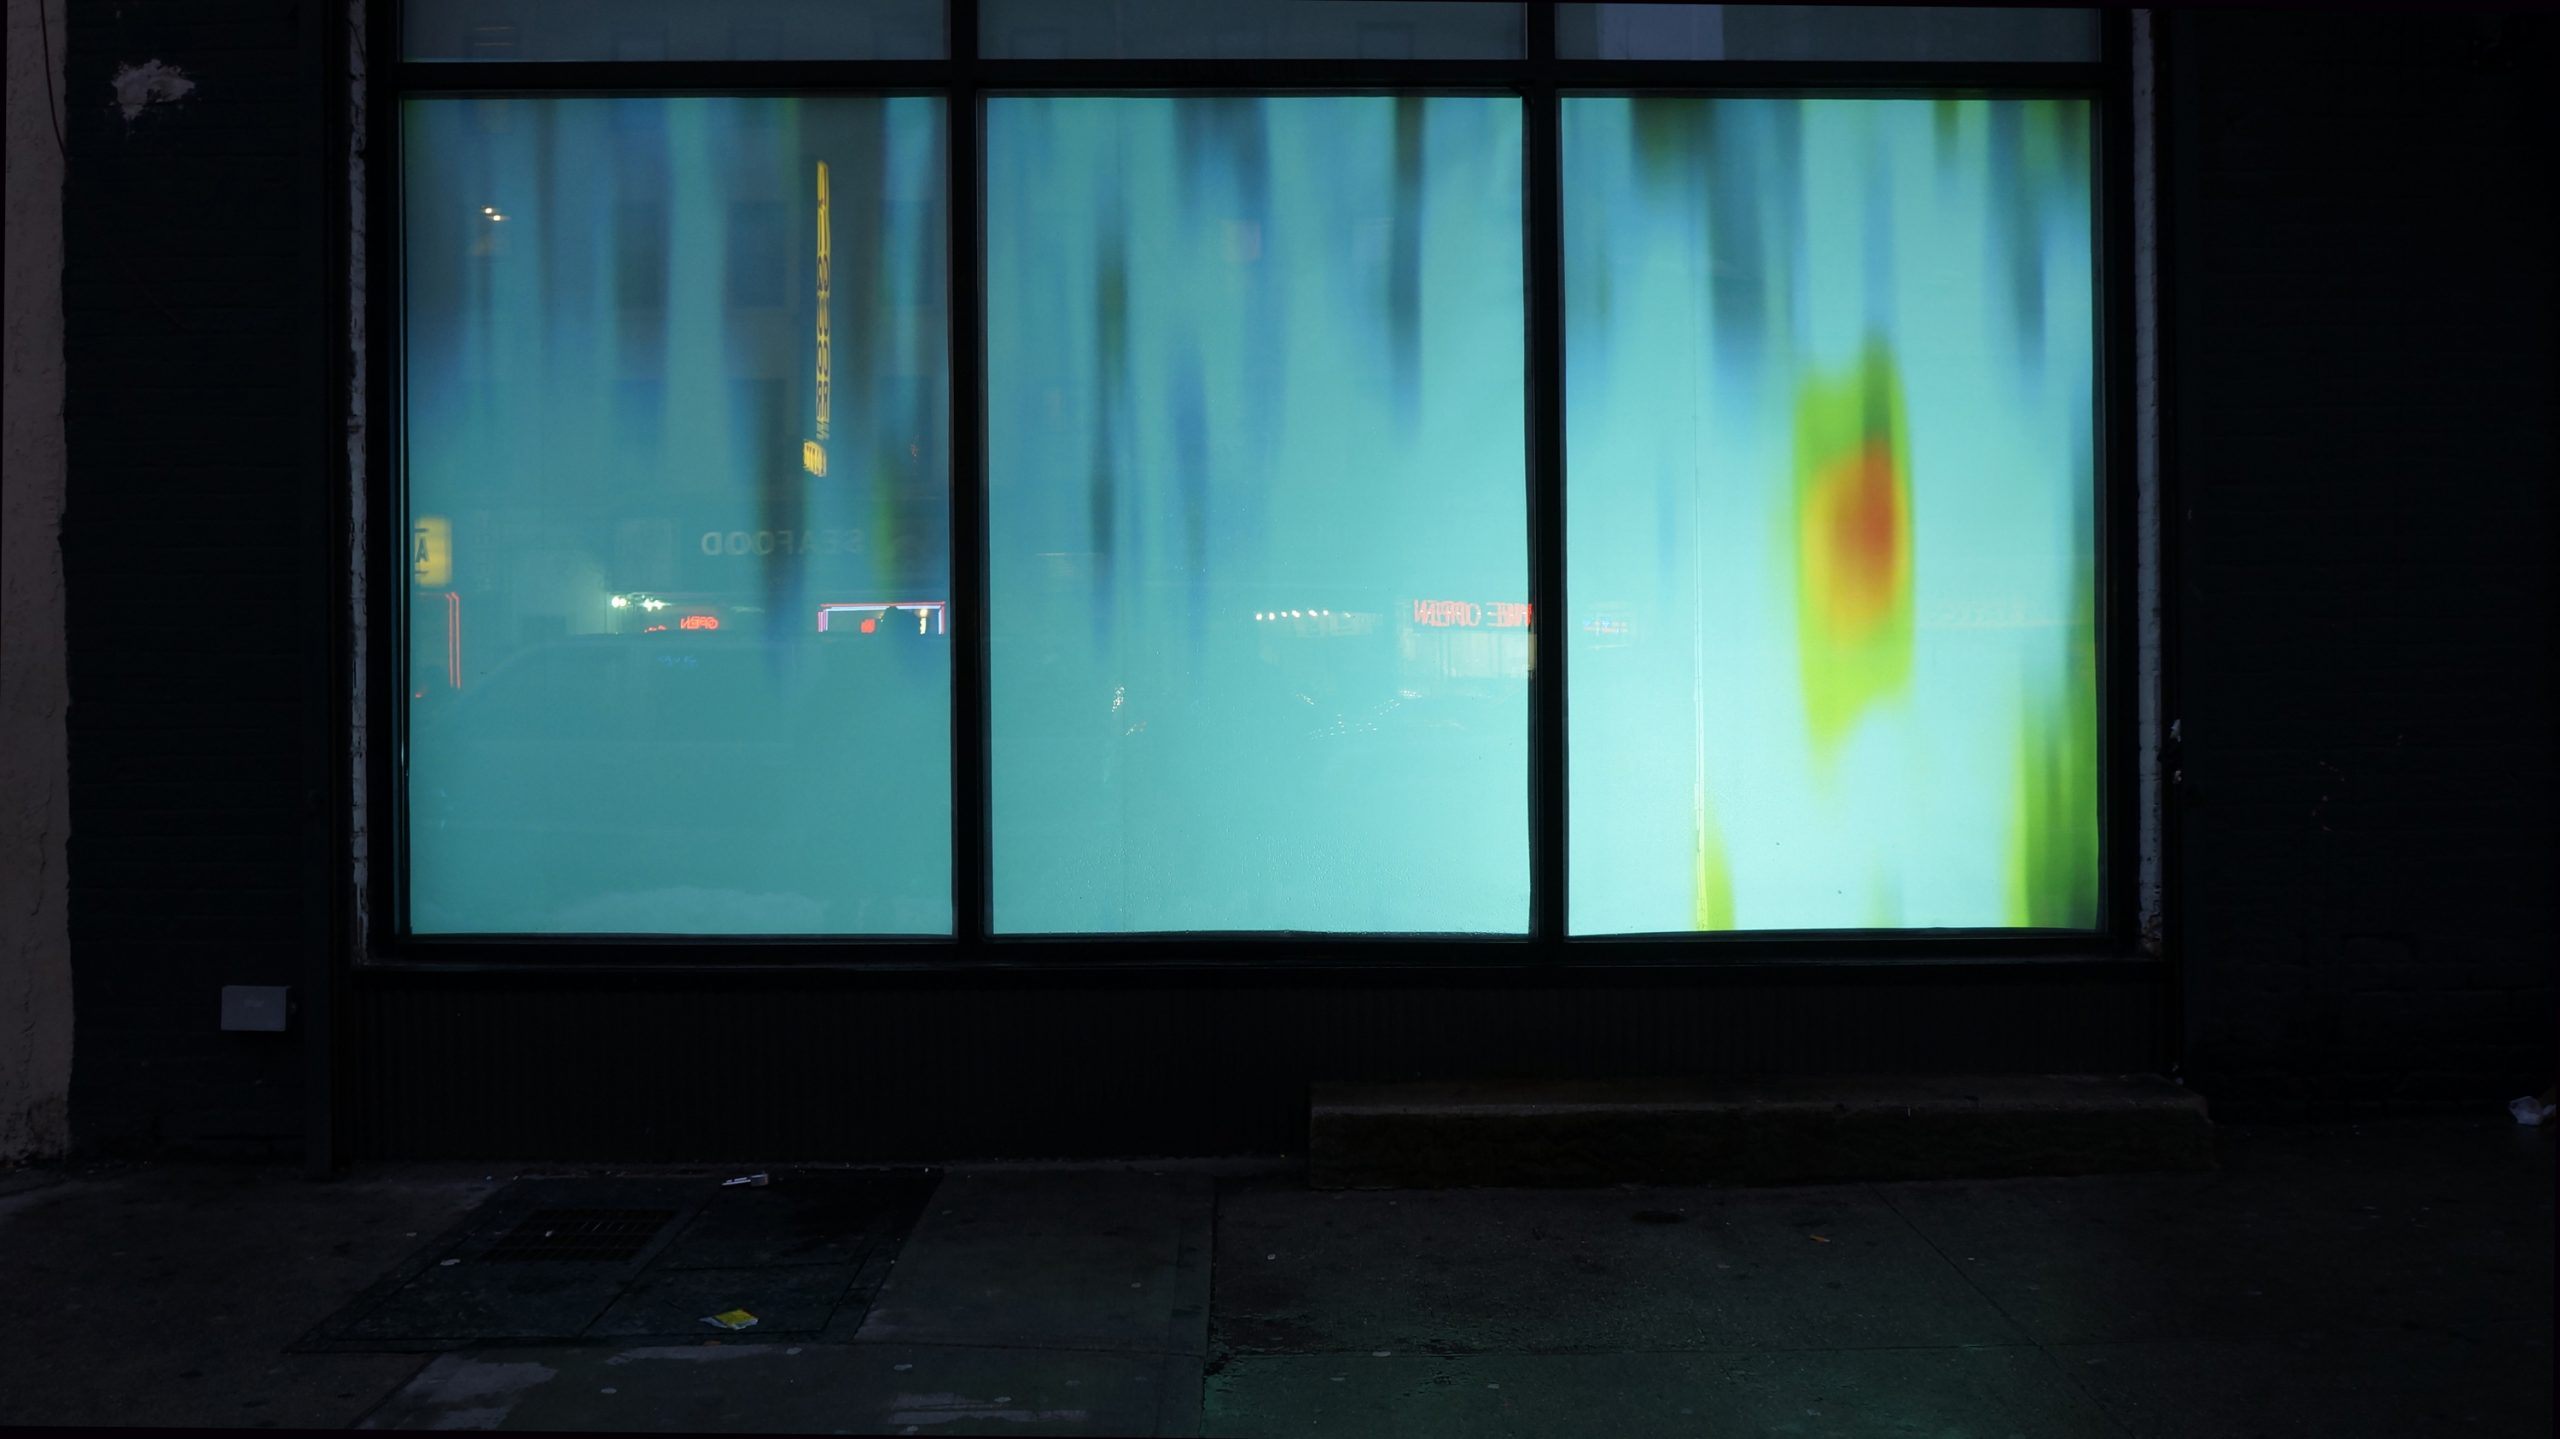 Solar Cycle 24: Public Animation Projections